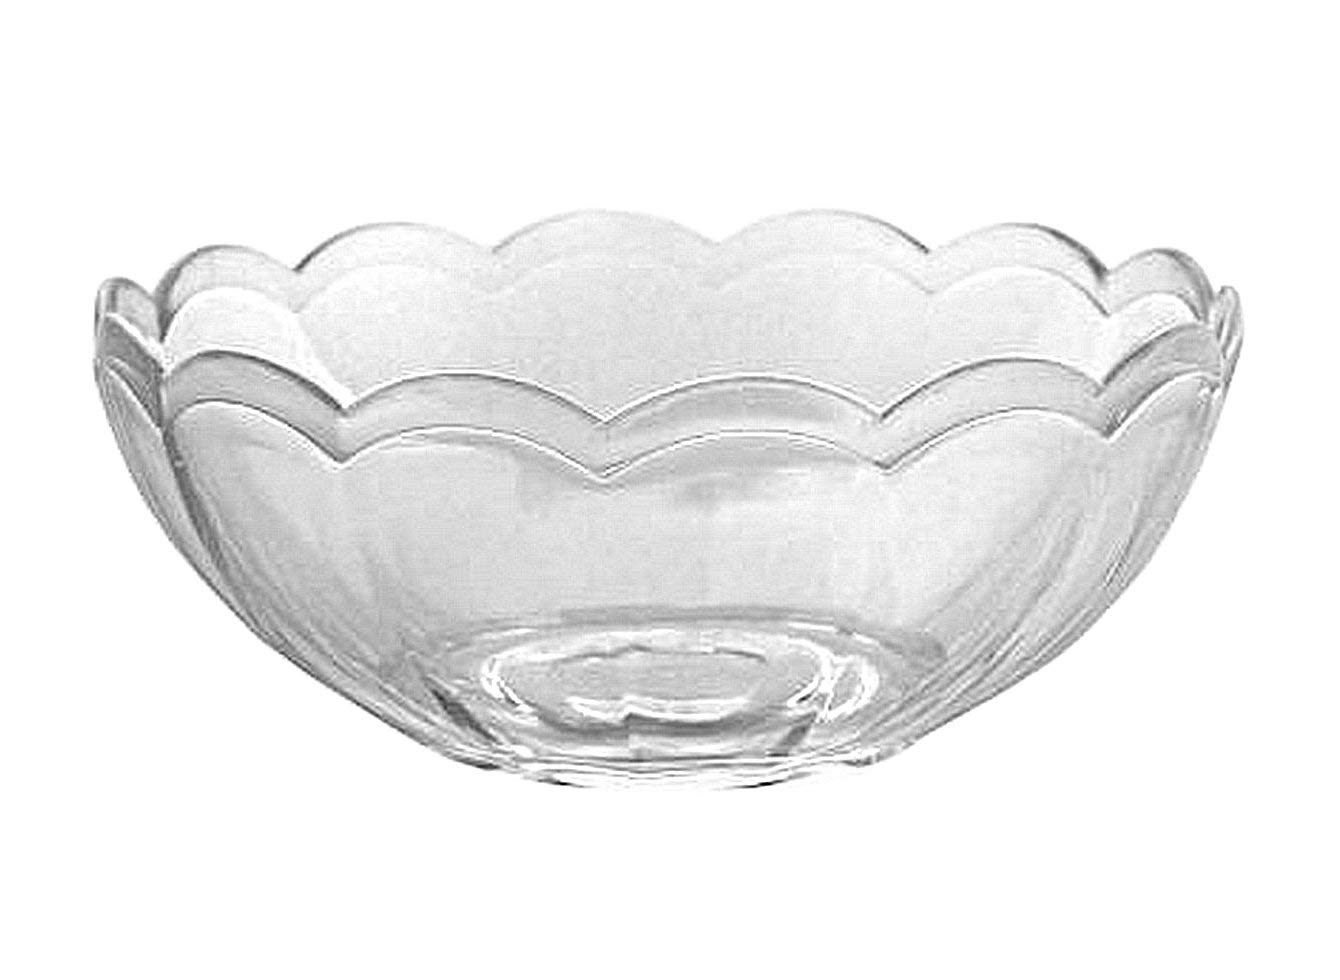 1 - Clear Snack Bowl 8 Oz. Party Accessory Party Supplies Clear Plastic